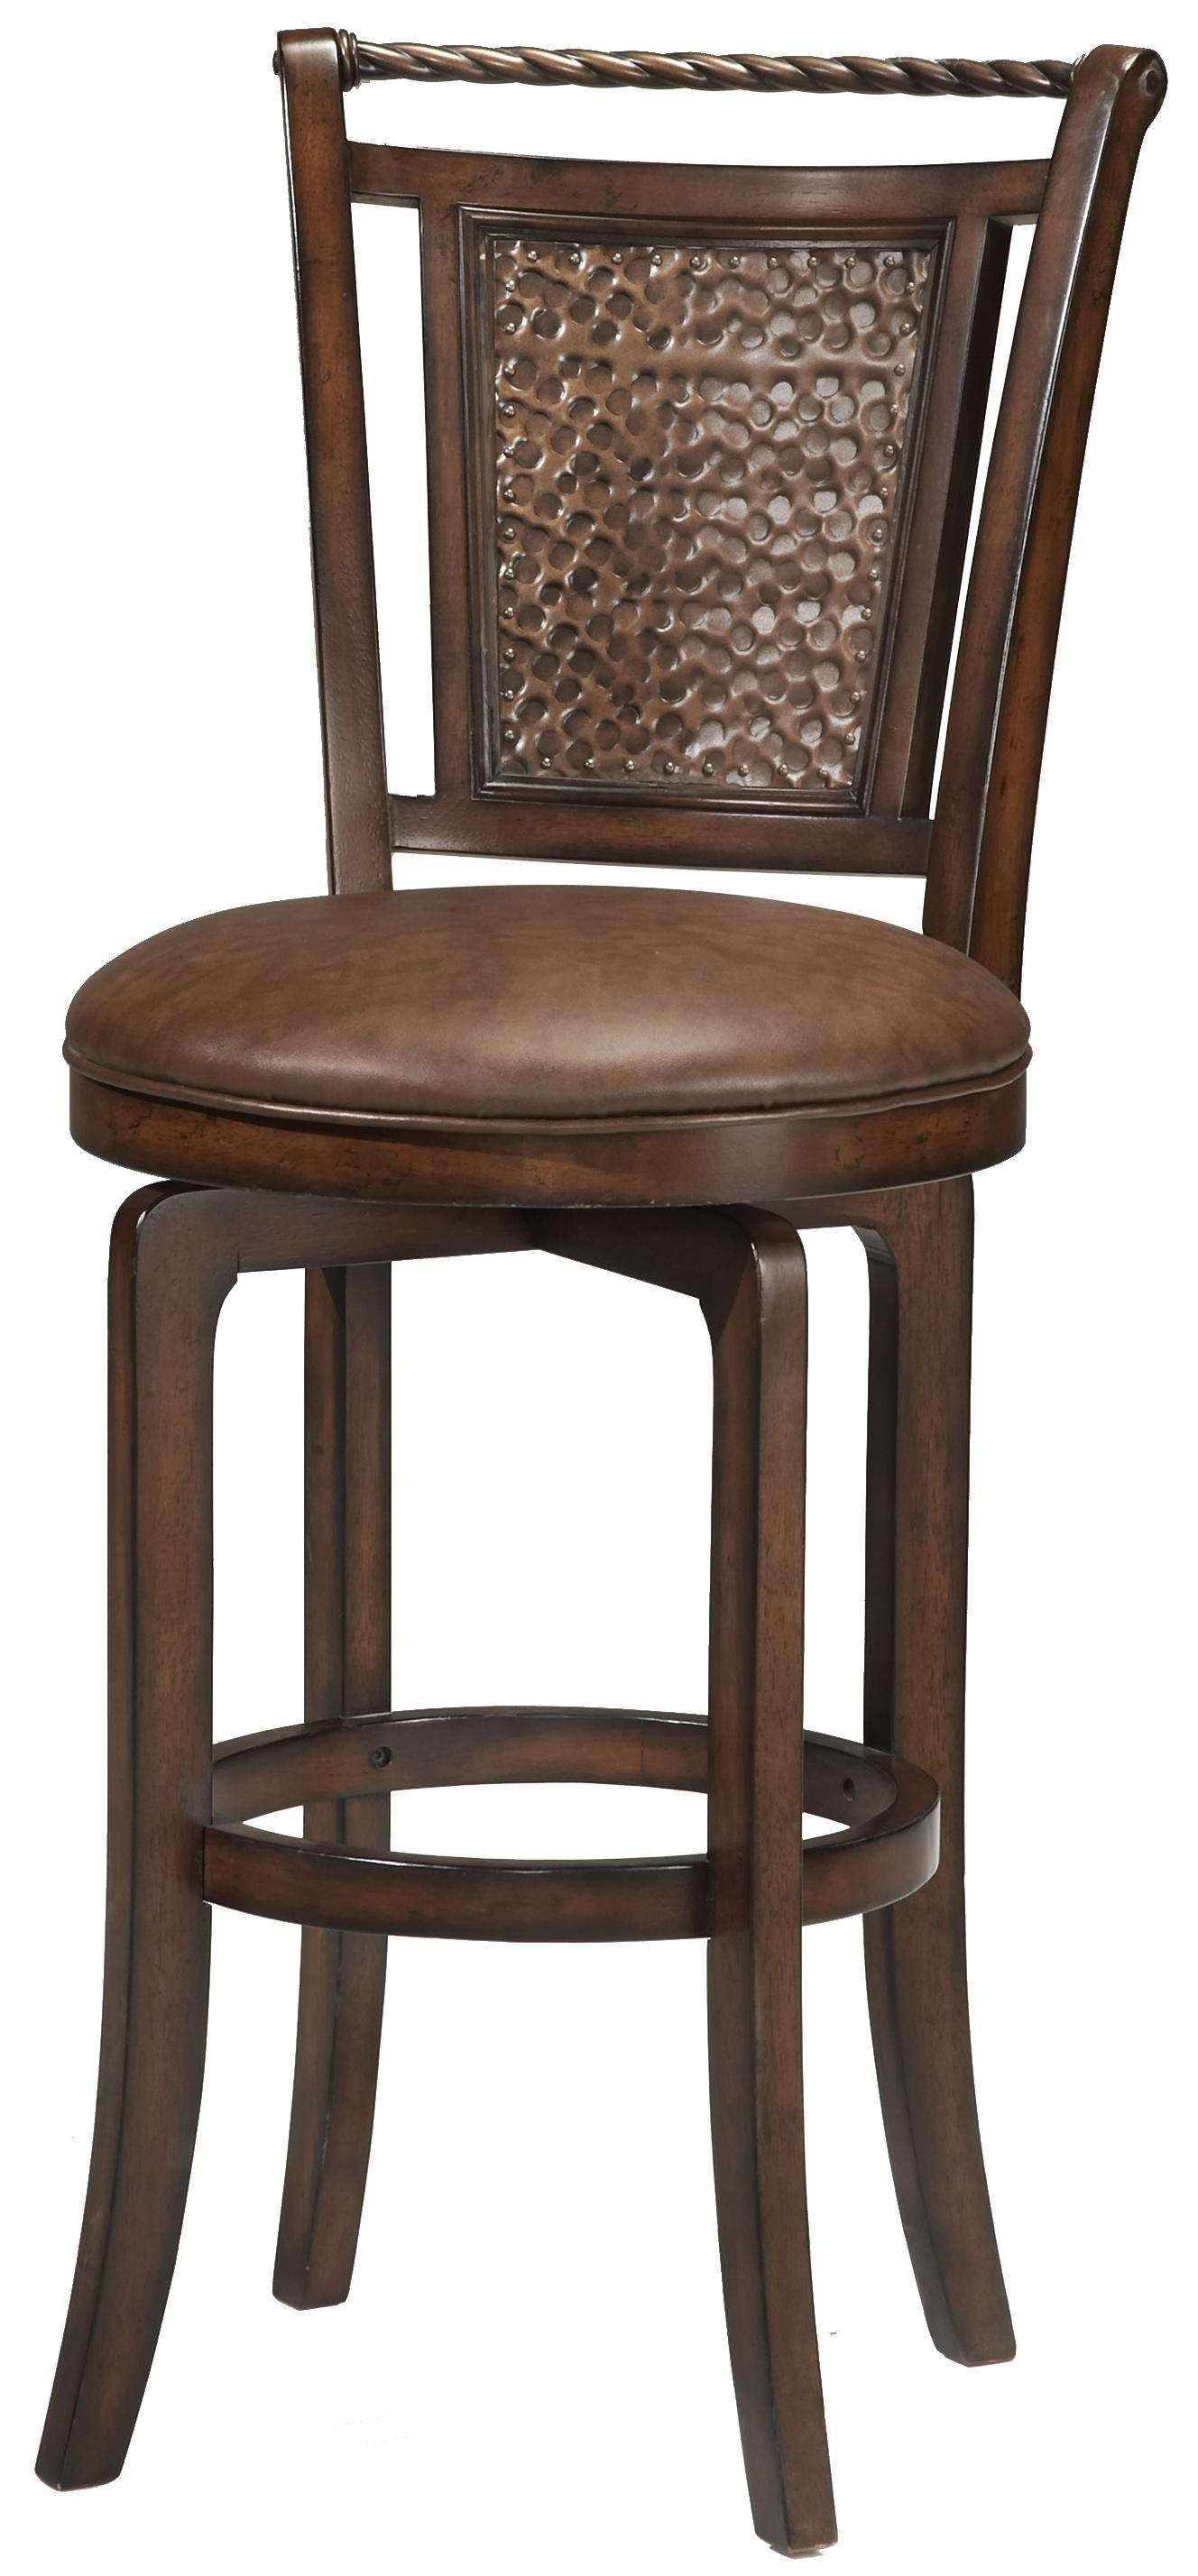 Hillsdale Wood Stools 30 5 Quot Bar Height Norwood Swivel